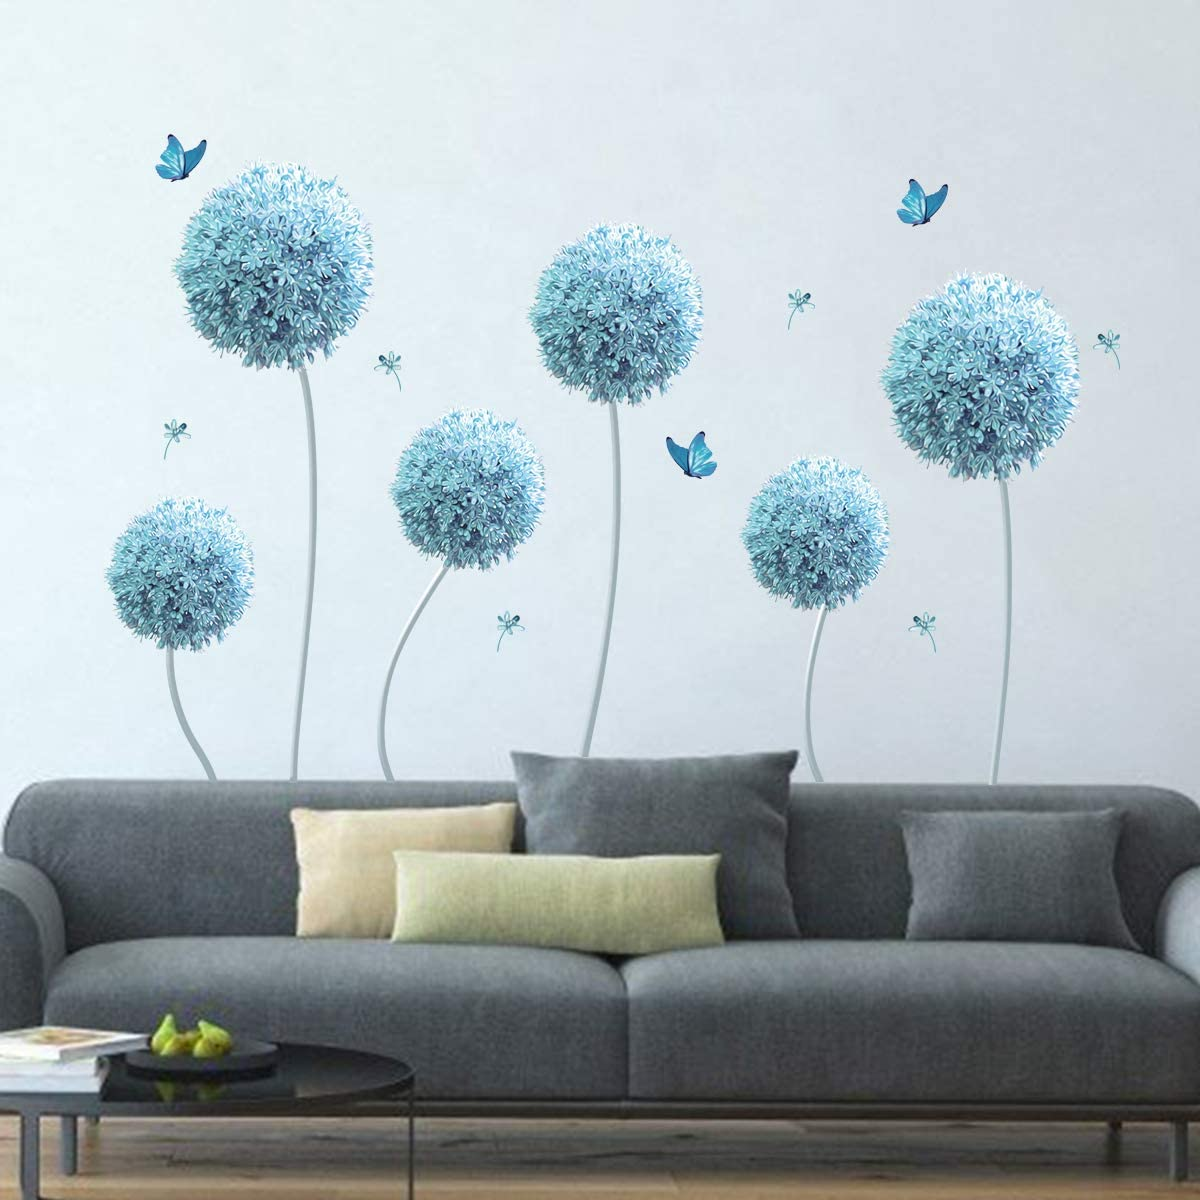 decalmile 6 Blue Dandelion Wall Decals Allium Flower Butterfly Wall Stickers Living Room Bedroom TV Wall Decor(Flower Size: 33 Inches)